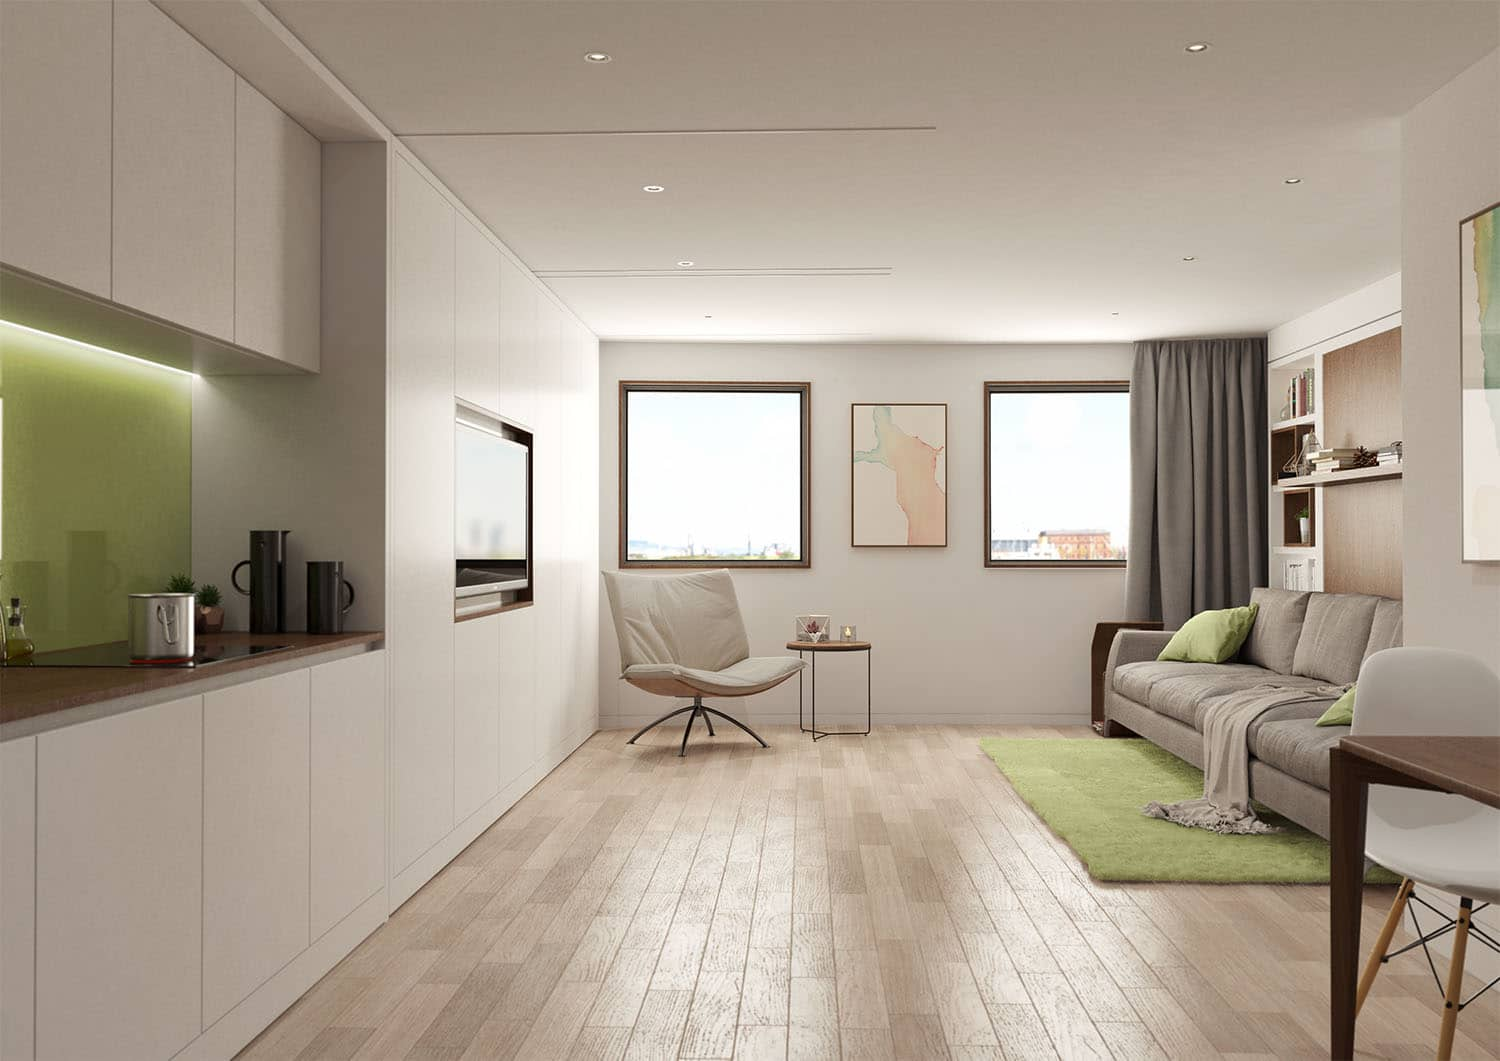 obel-studios-belfast-concept-apartment-interior-cgi-live-francos-and-costa-architectural-visualisation-agency